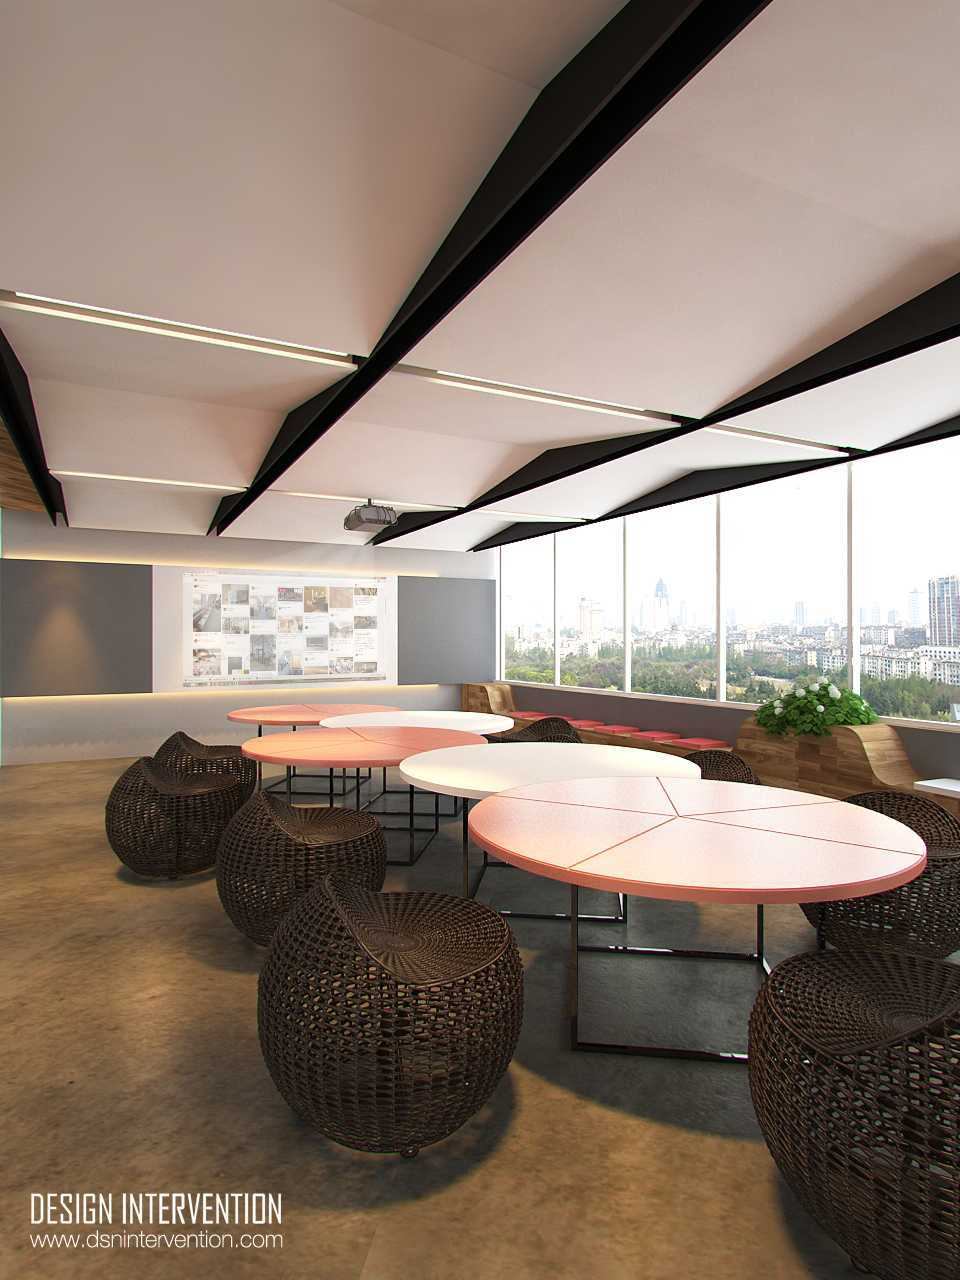 Design Intervention B - Office Concept Bsd Office Park Bsd Office Park Big-Meeting-View-1  13975